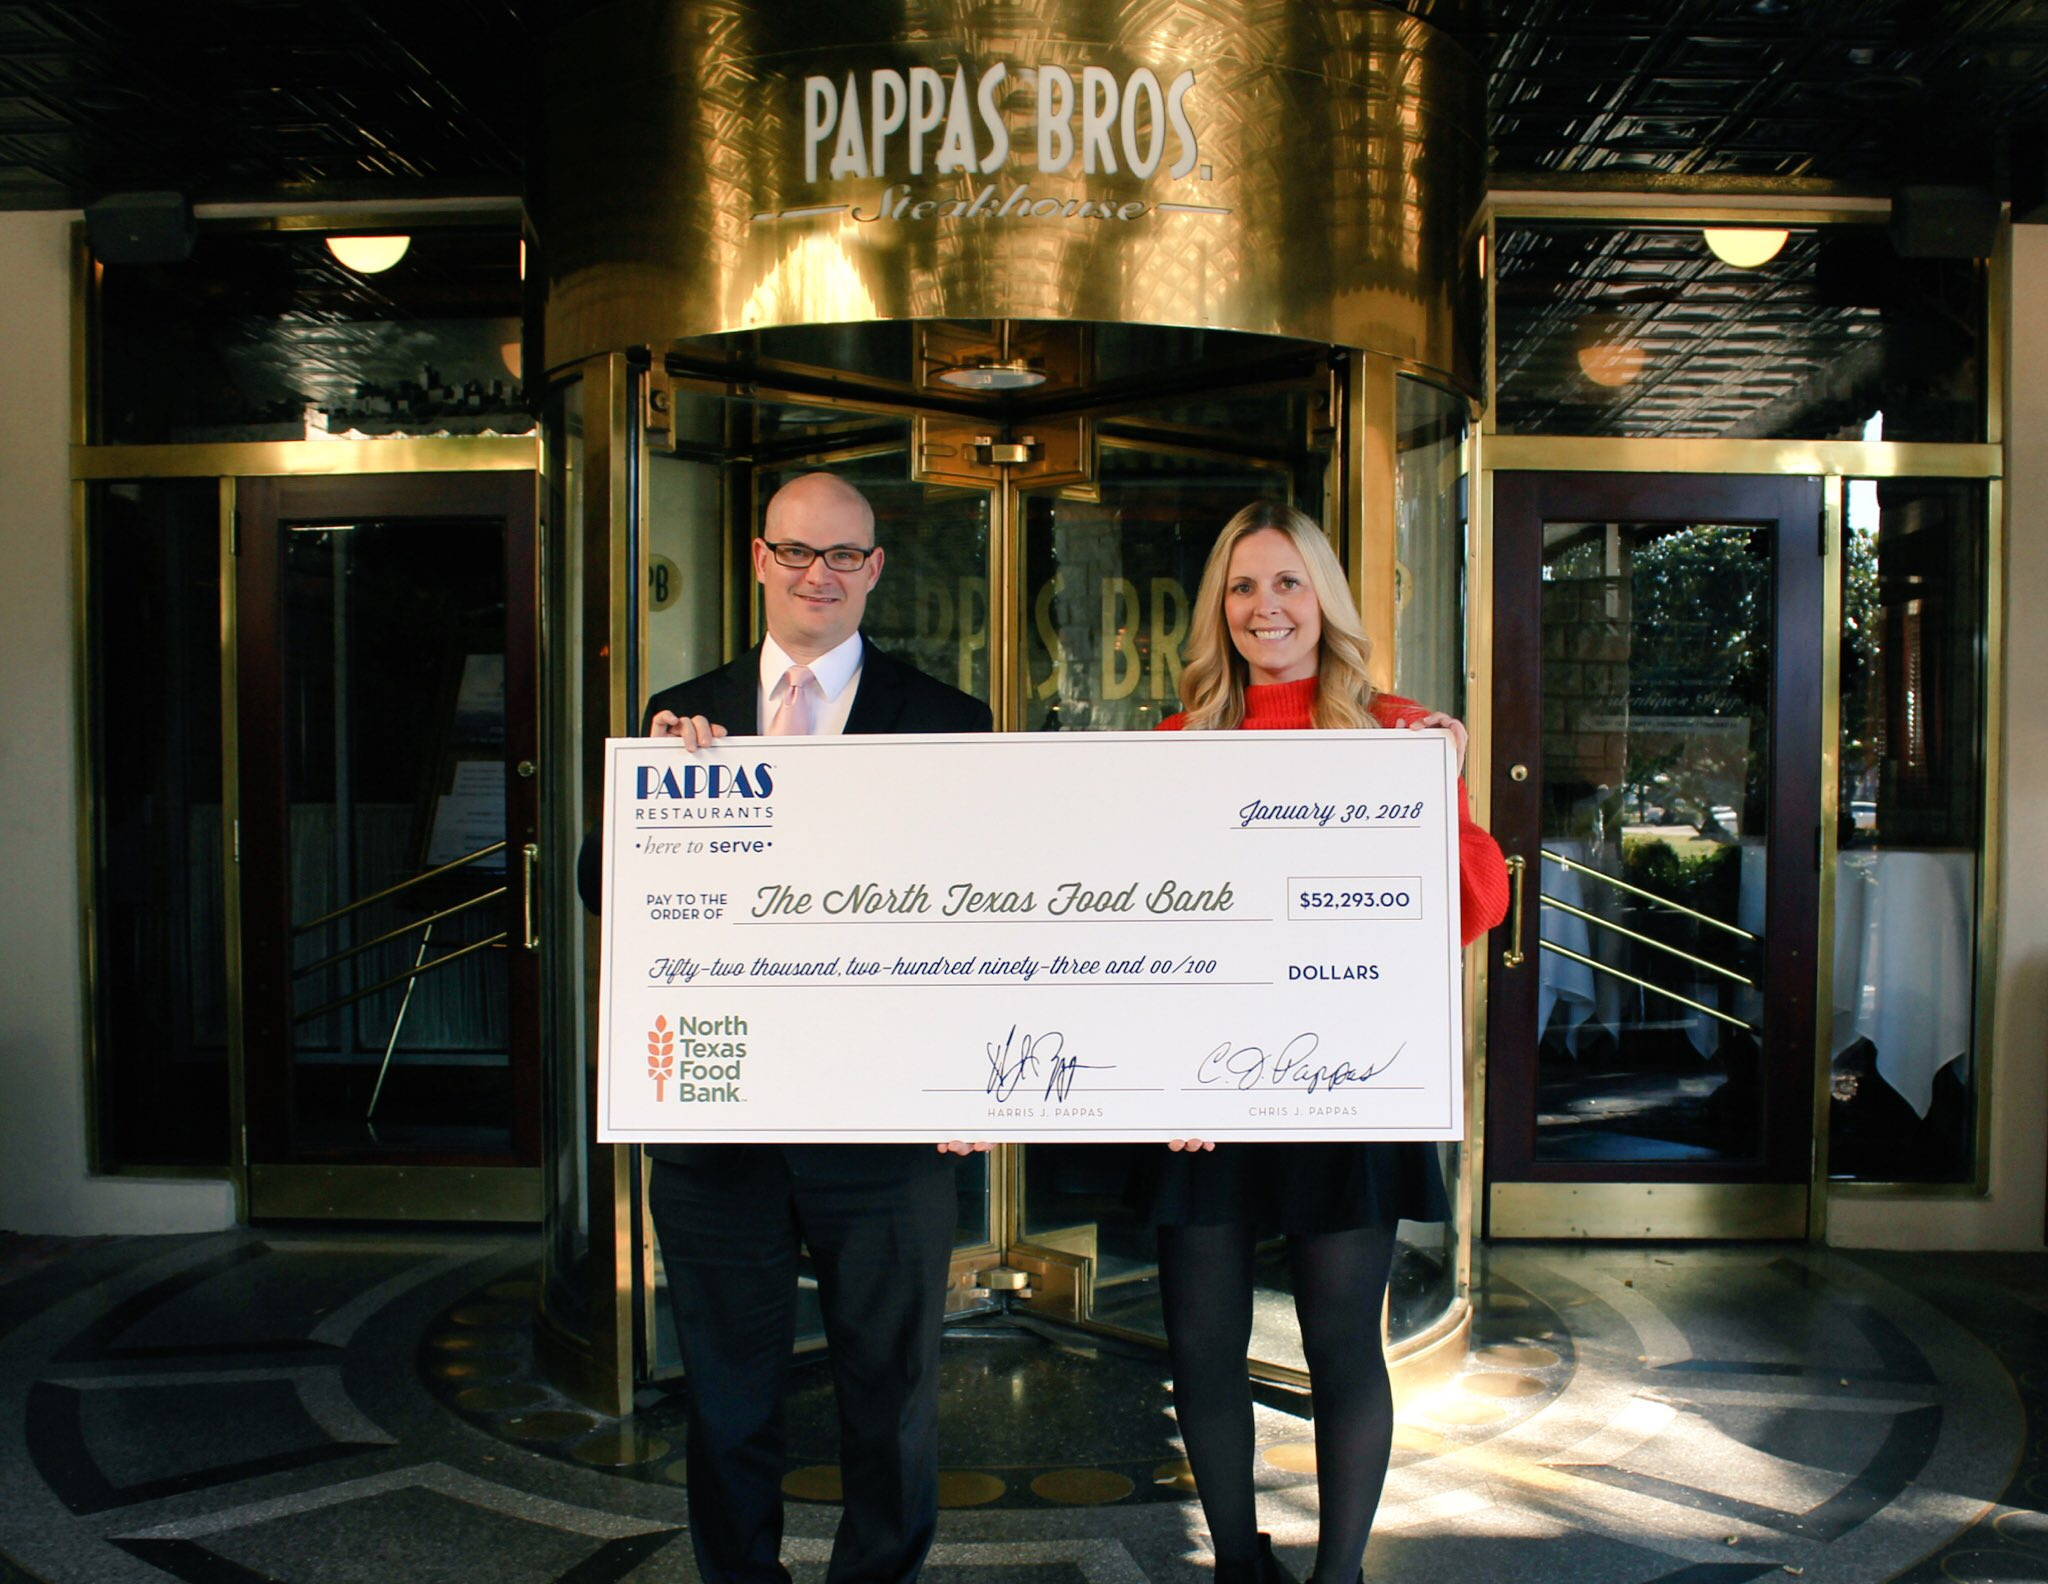 Rick Turner, general manager, top DFW Restaurant Week Star Restaurant, Pappas Bros. Steakhouse presents Lora Farris, director of marketing, North Texas Food Bank, with a check for $52,293 including $46,220 for DFW Restaurant Week.